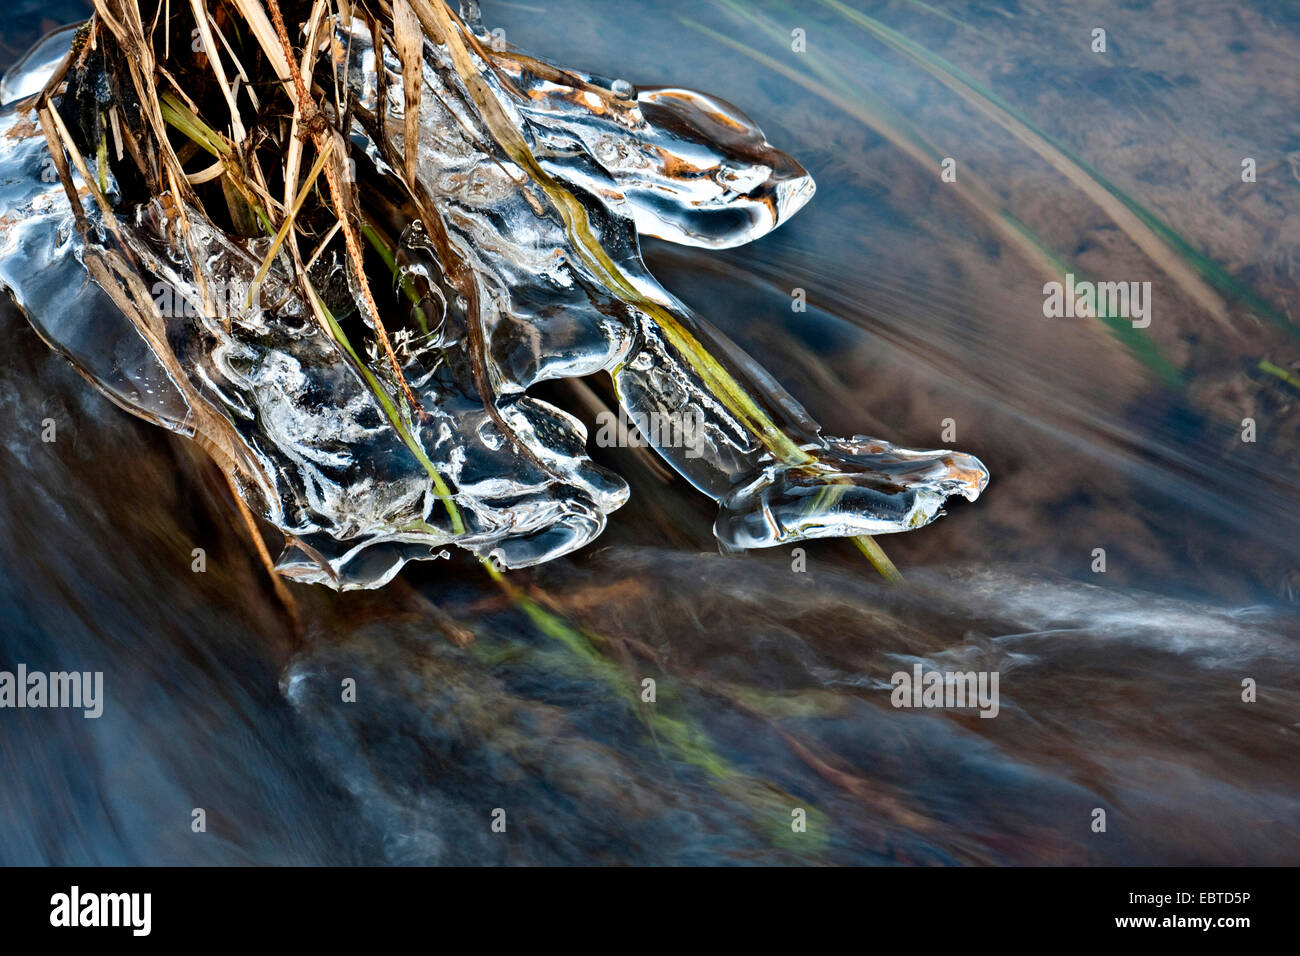 ice at grasses in a creek, Germany, Gewaesser - Stock Image